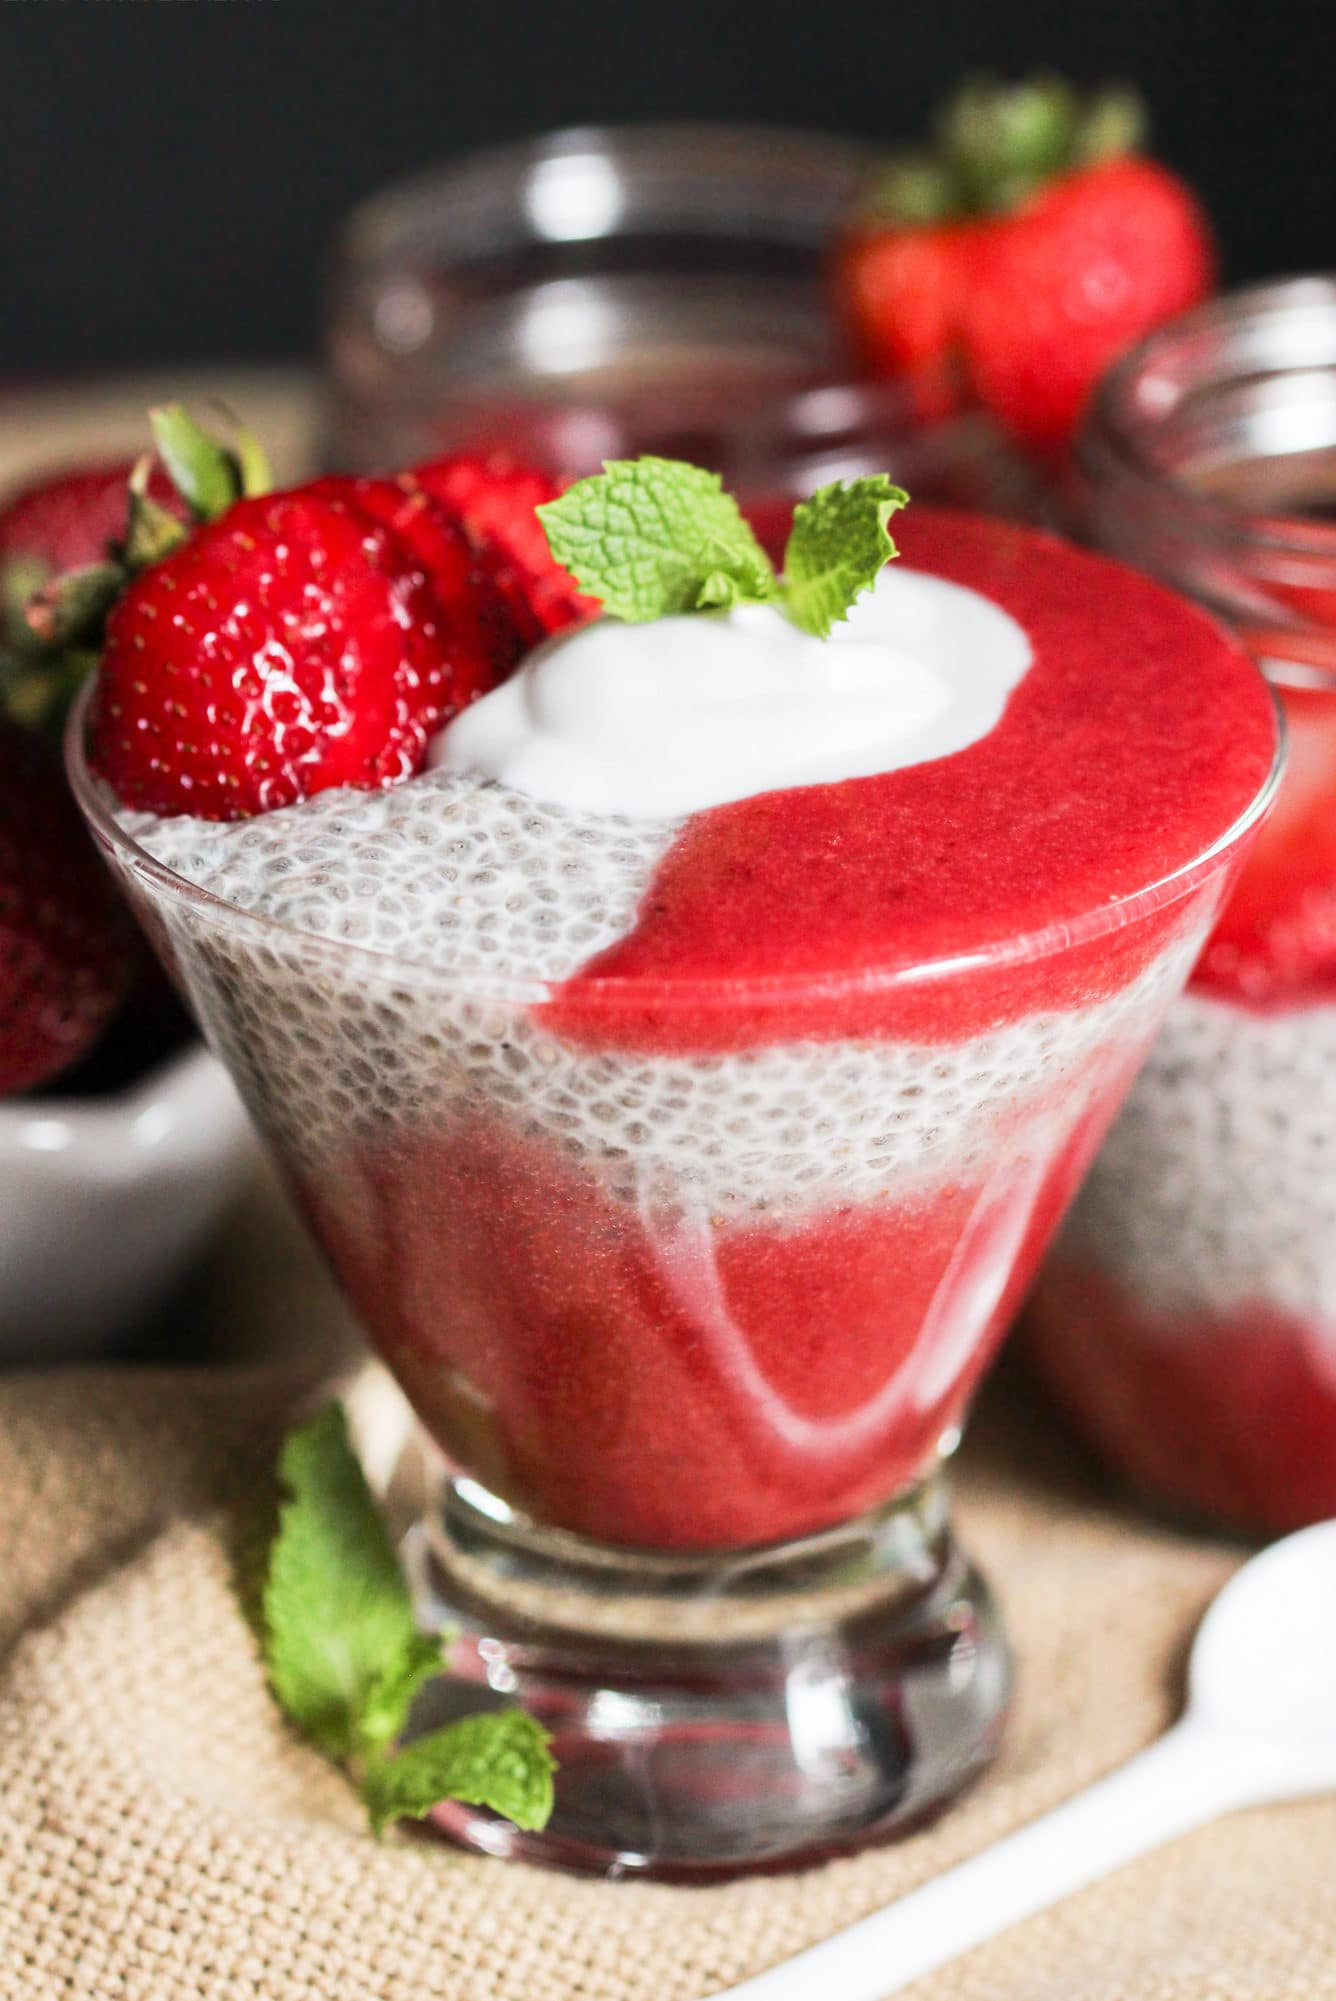 Healthy Strawberry Vanilla Chia Seed Pudding (refined sugar free, low fat, low calorie, high fiber, gluten free, dairy free, vegan) - Healthy Dessert Recipes at Desserts with Benefits